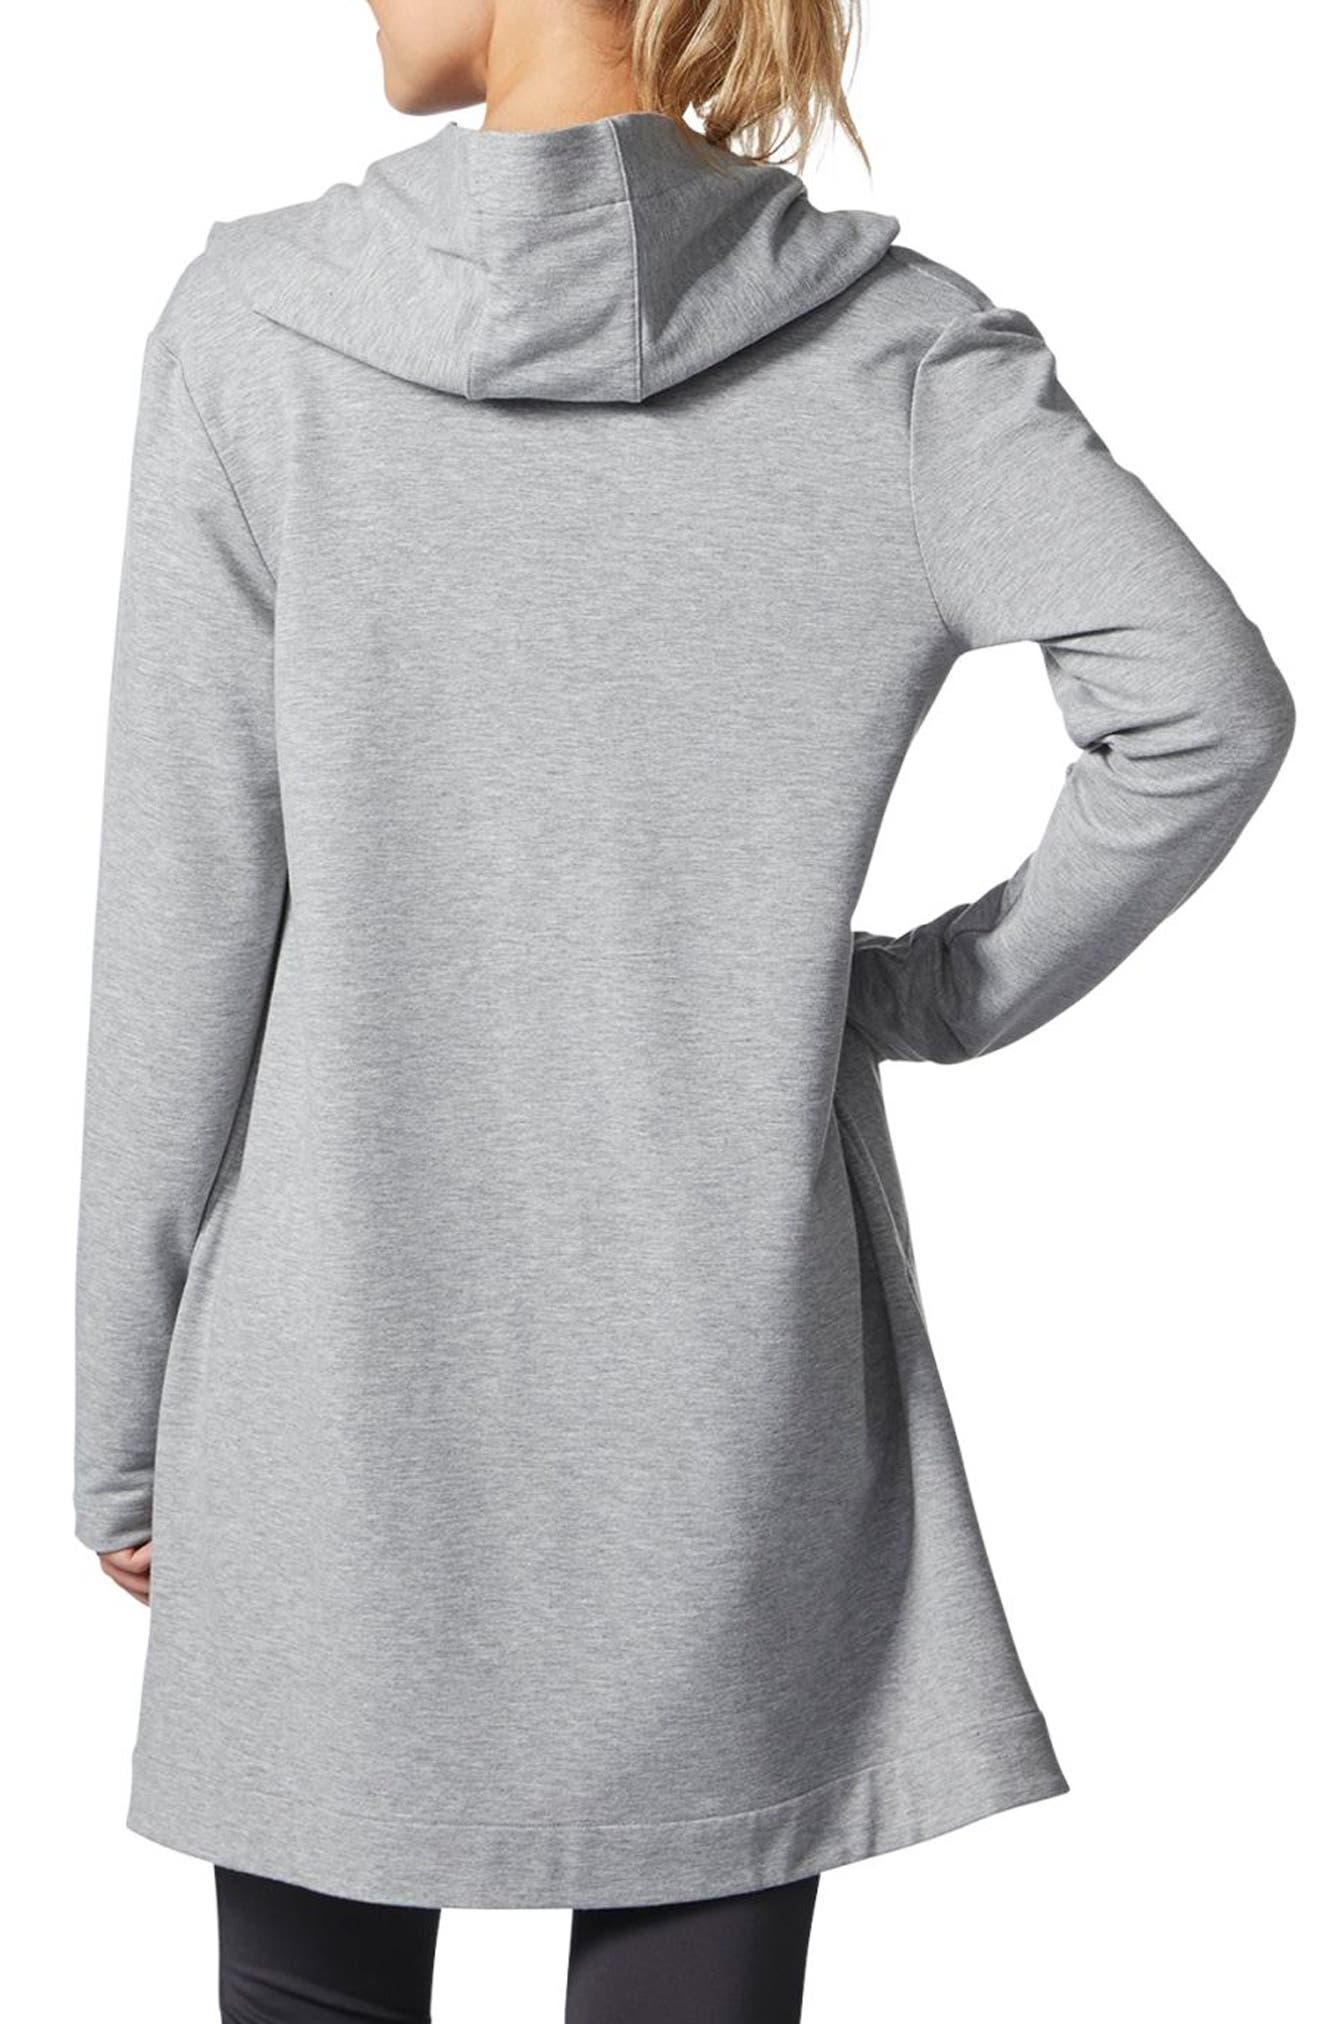 Performance Cover Up Jacket,                             Alternate thumbnail 4, color,